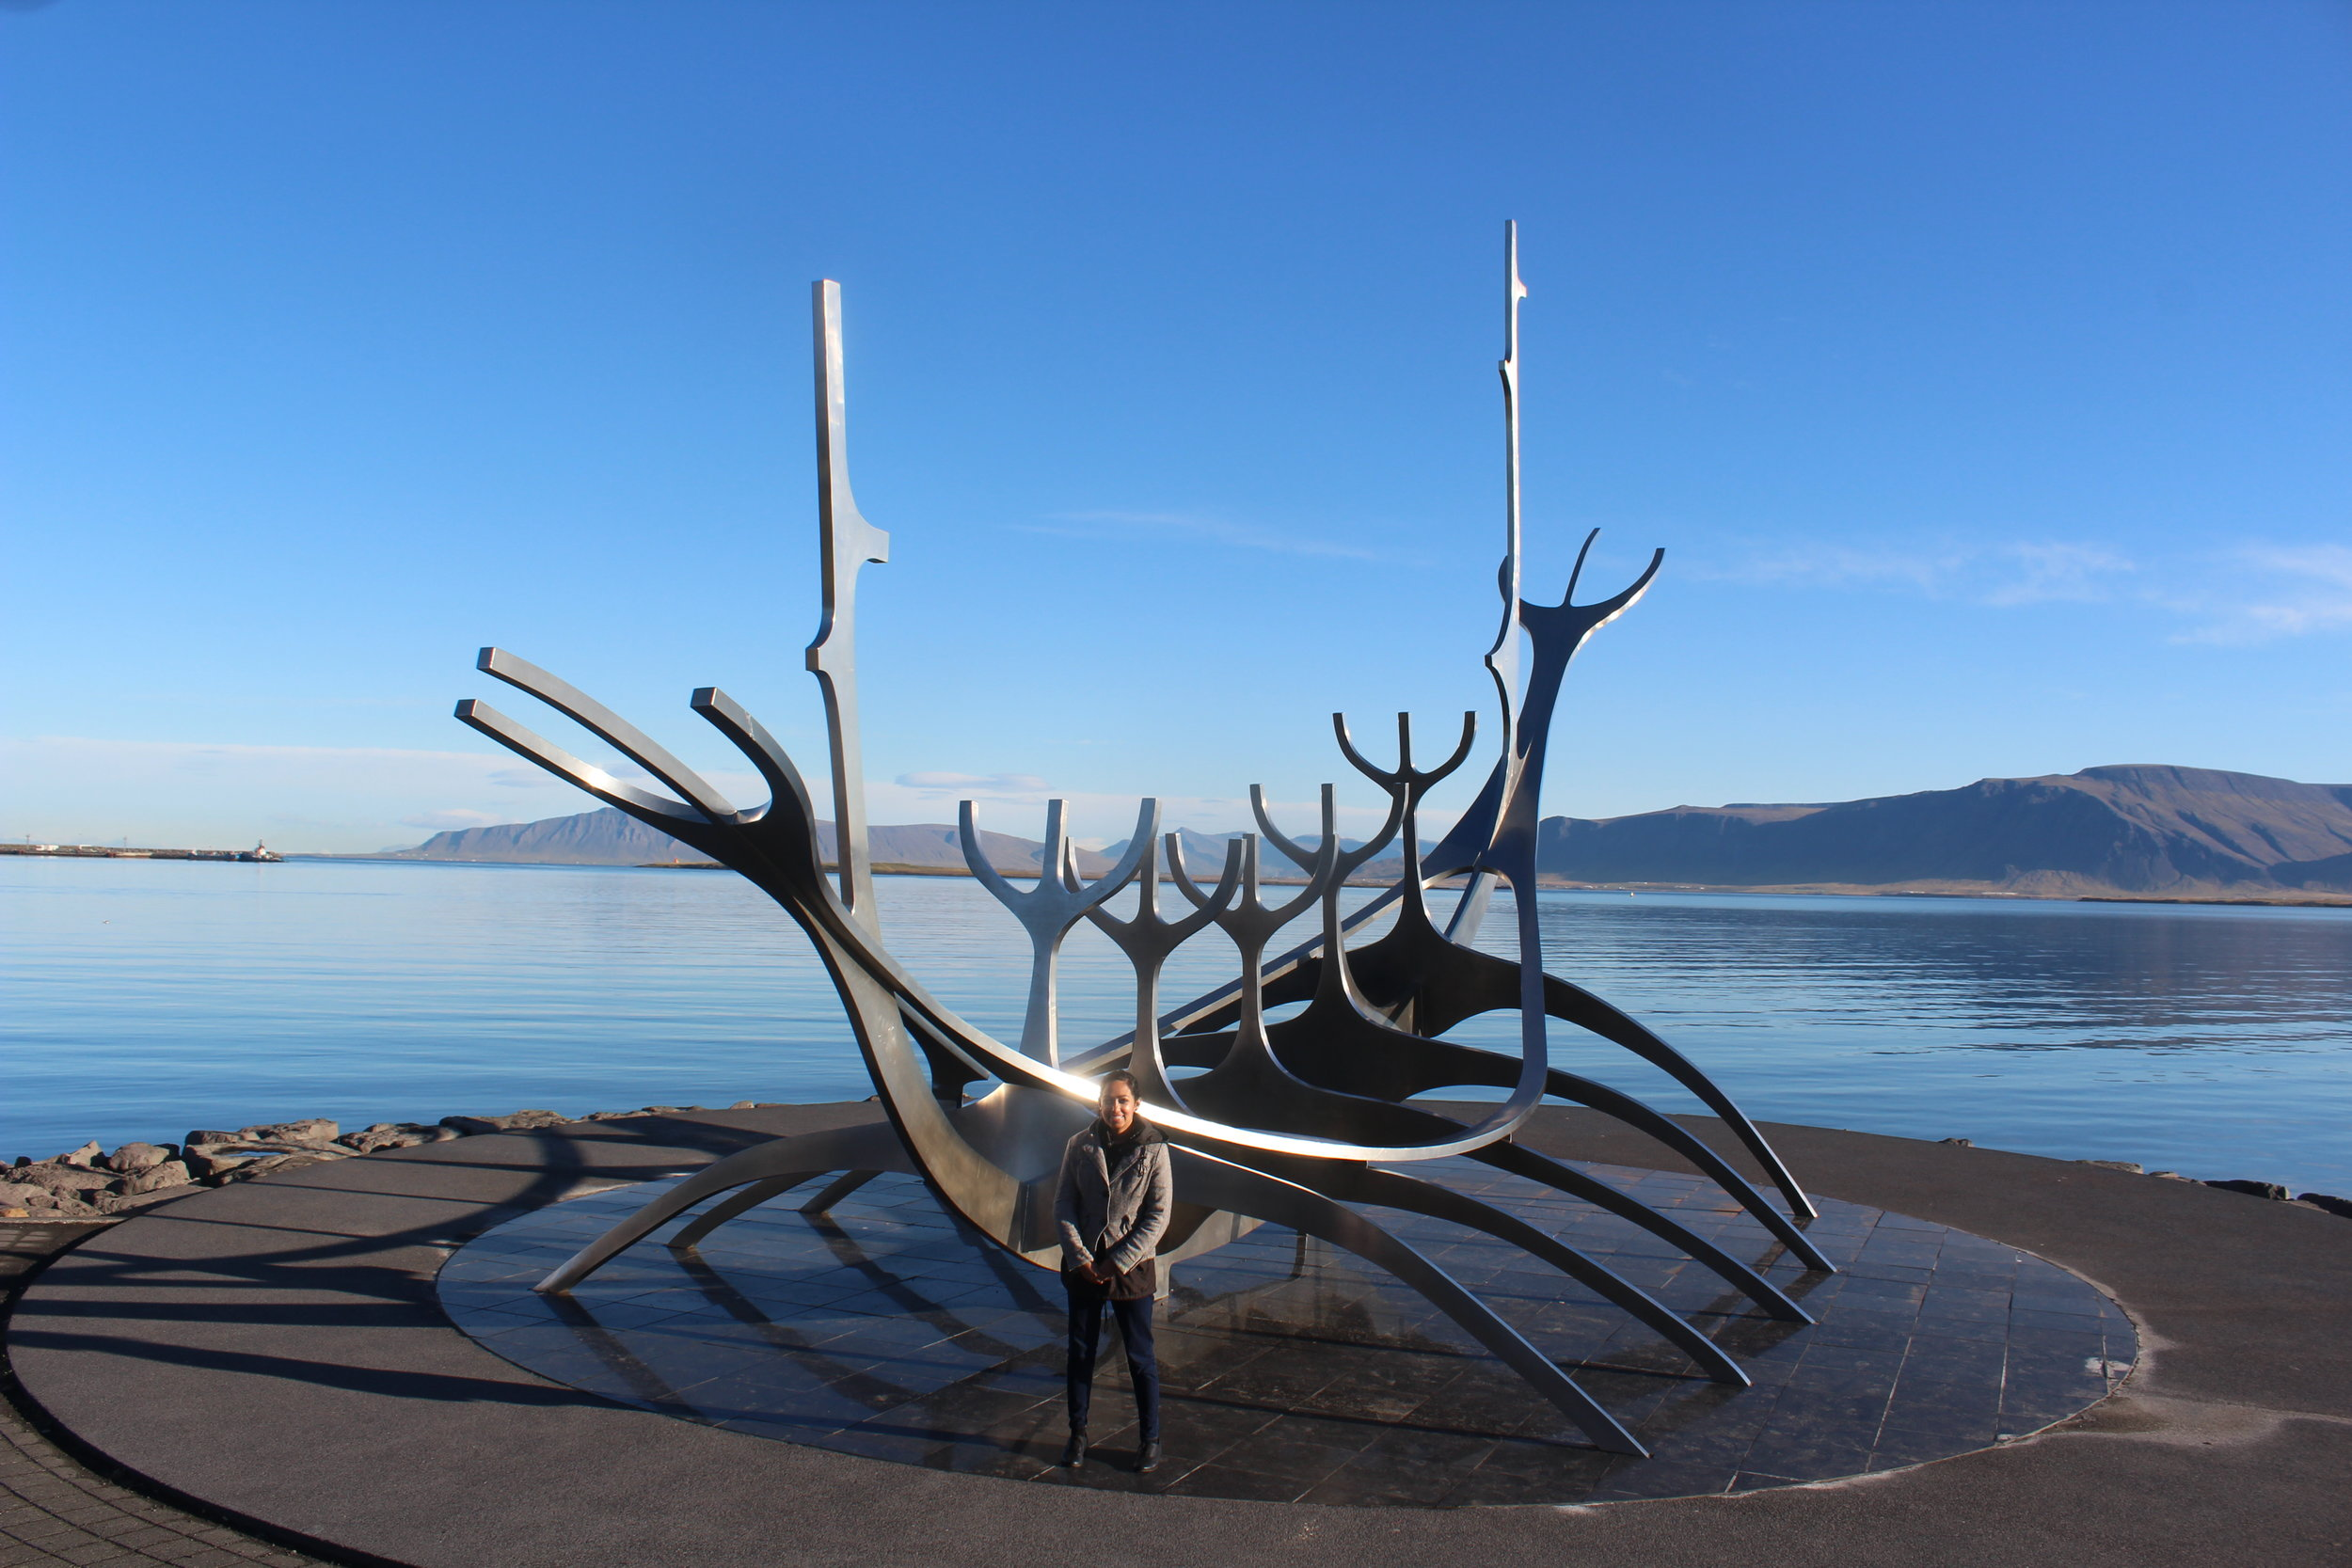 - Sun Voyager sculpture, made of stainless steel, and resting upon granite, overlooking the Atlantic. You don't need much time here. If you're headed to Harpa, this isn't too far away and the blue mountain range + horizon blends in well with the ocean, making this a scenic backdrop!